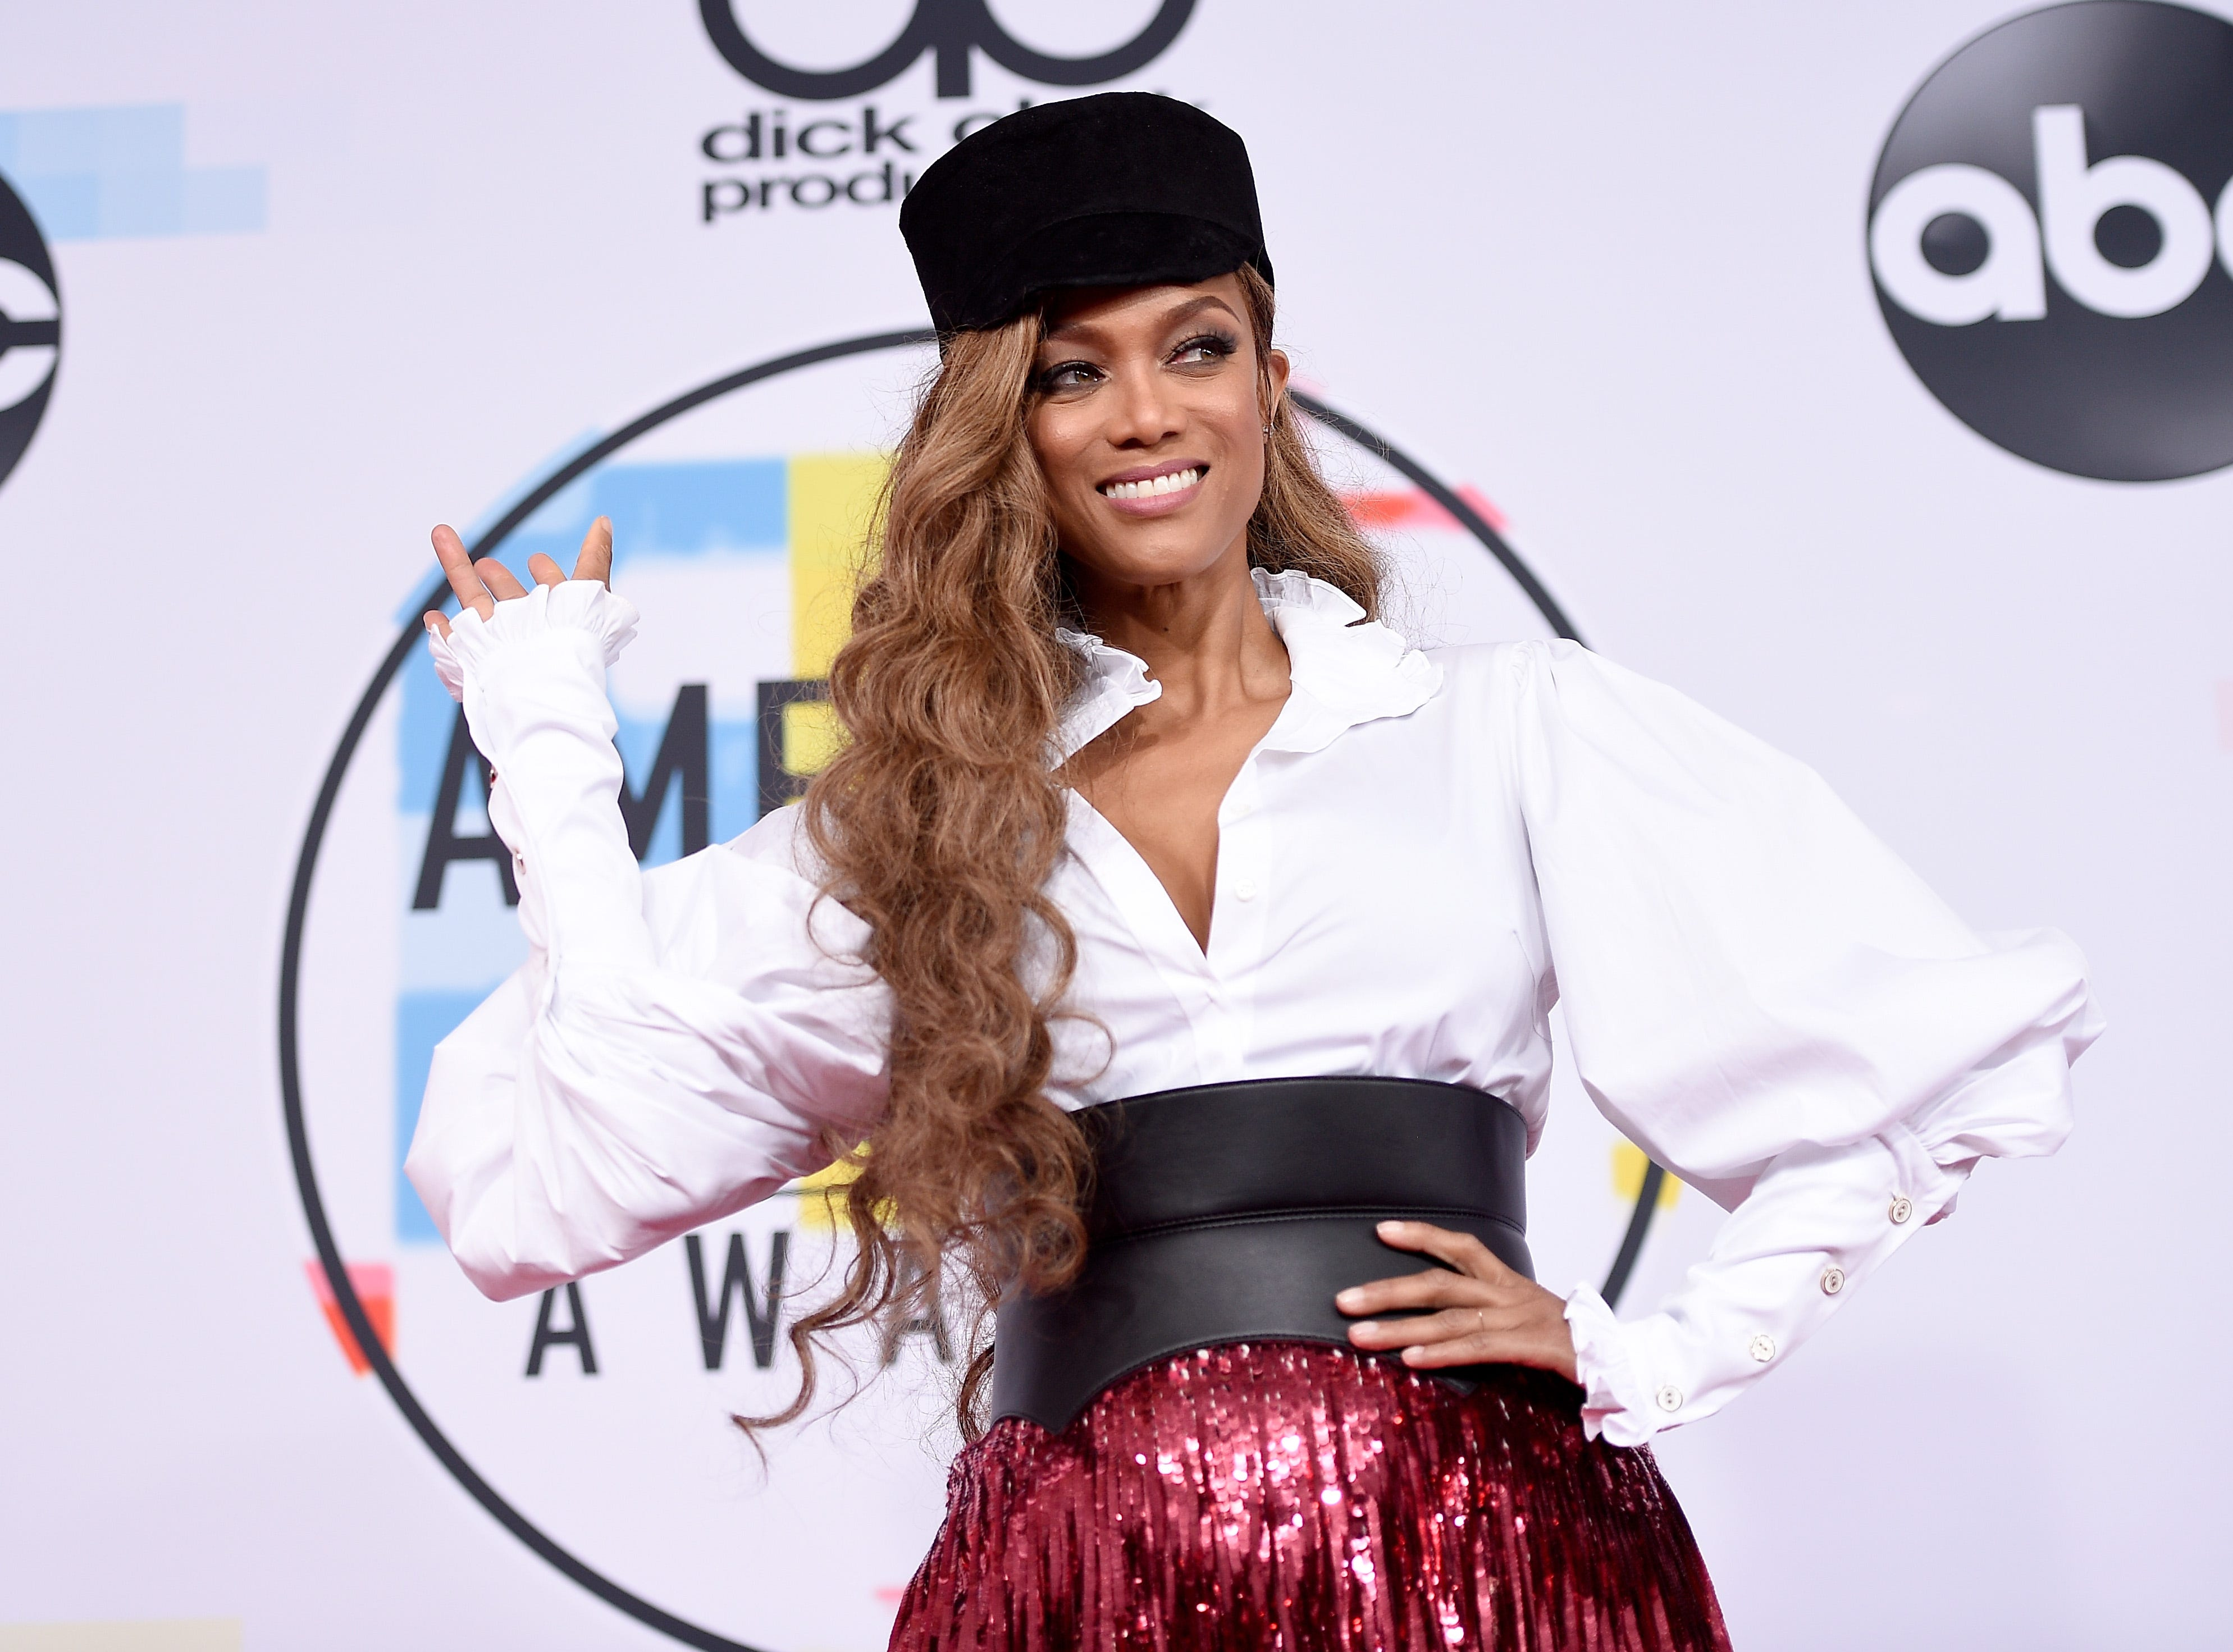 Tyra Banks attends the 2018 American Music Awards at Microsoft Theater on October 9, 2018 in Los Angeles, California.